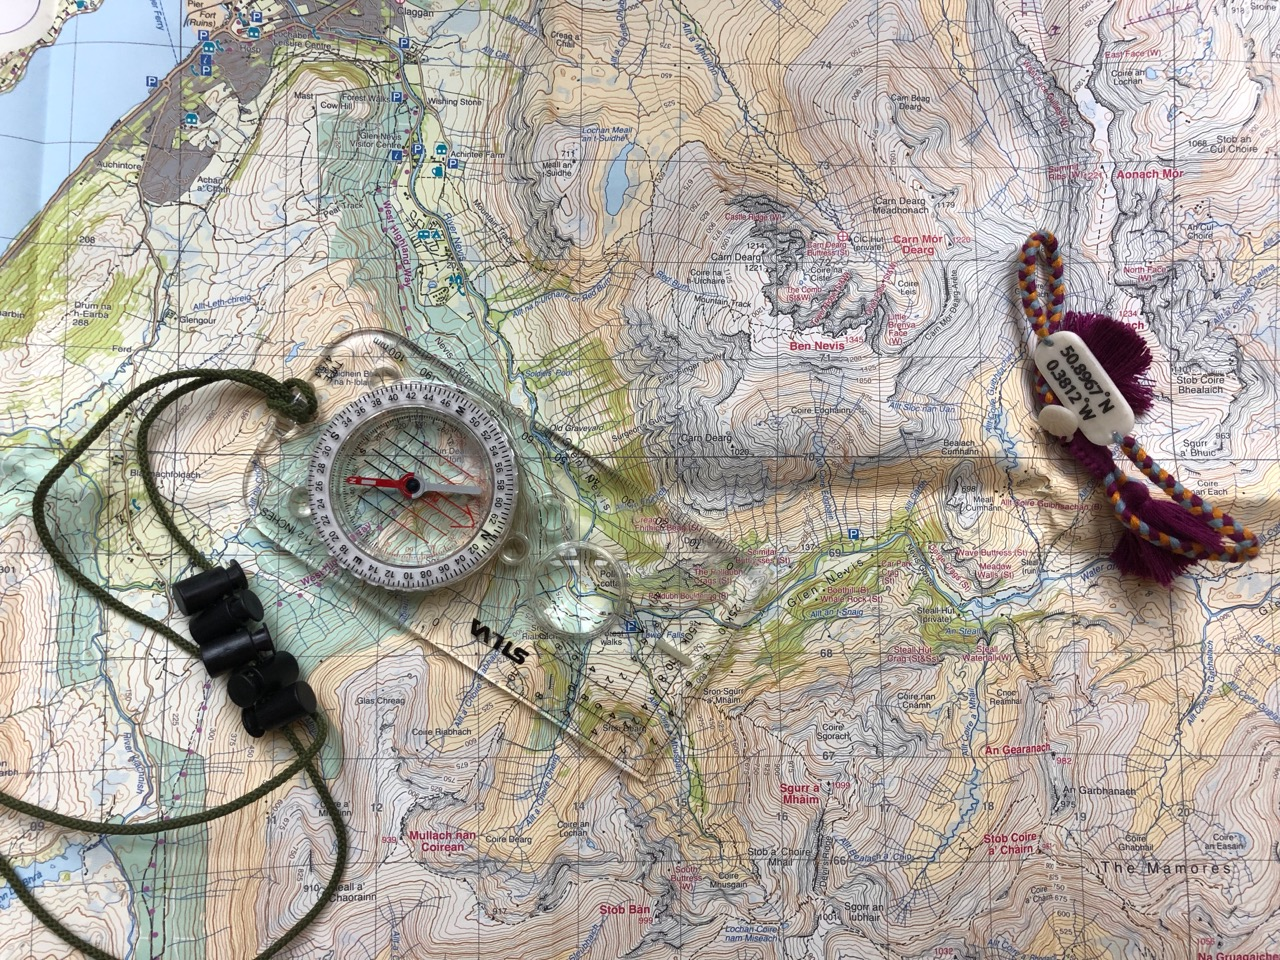 West Highland Way map and Compass